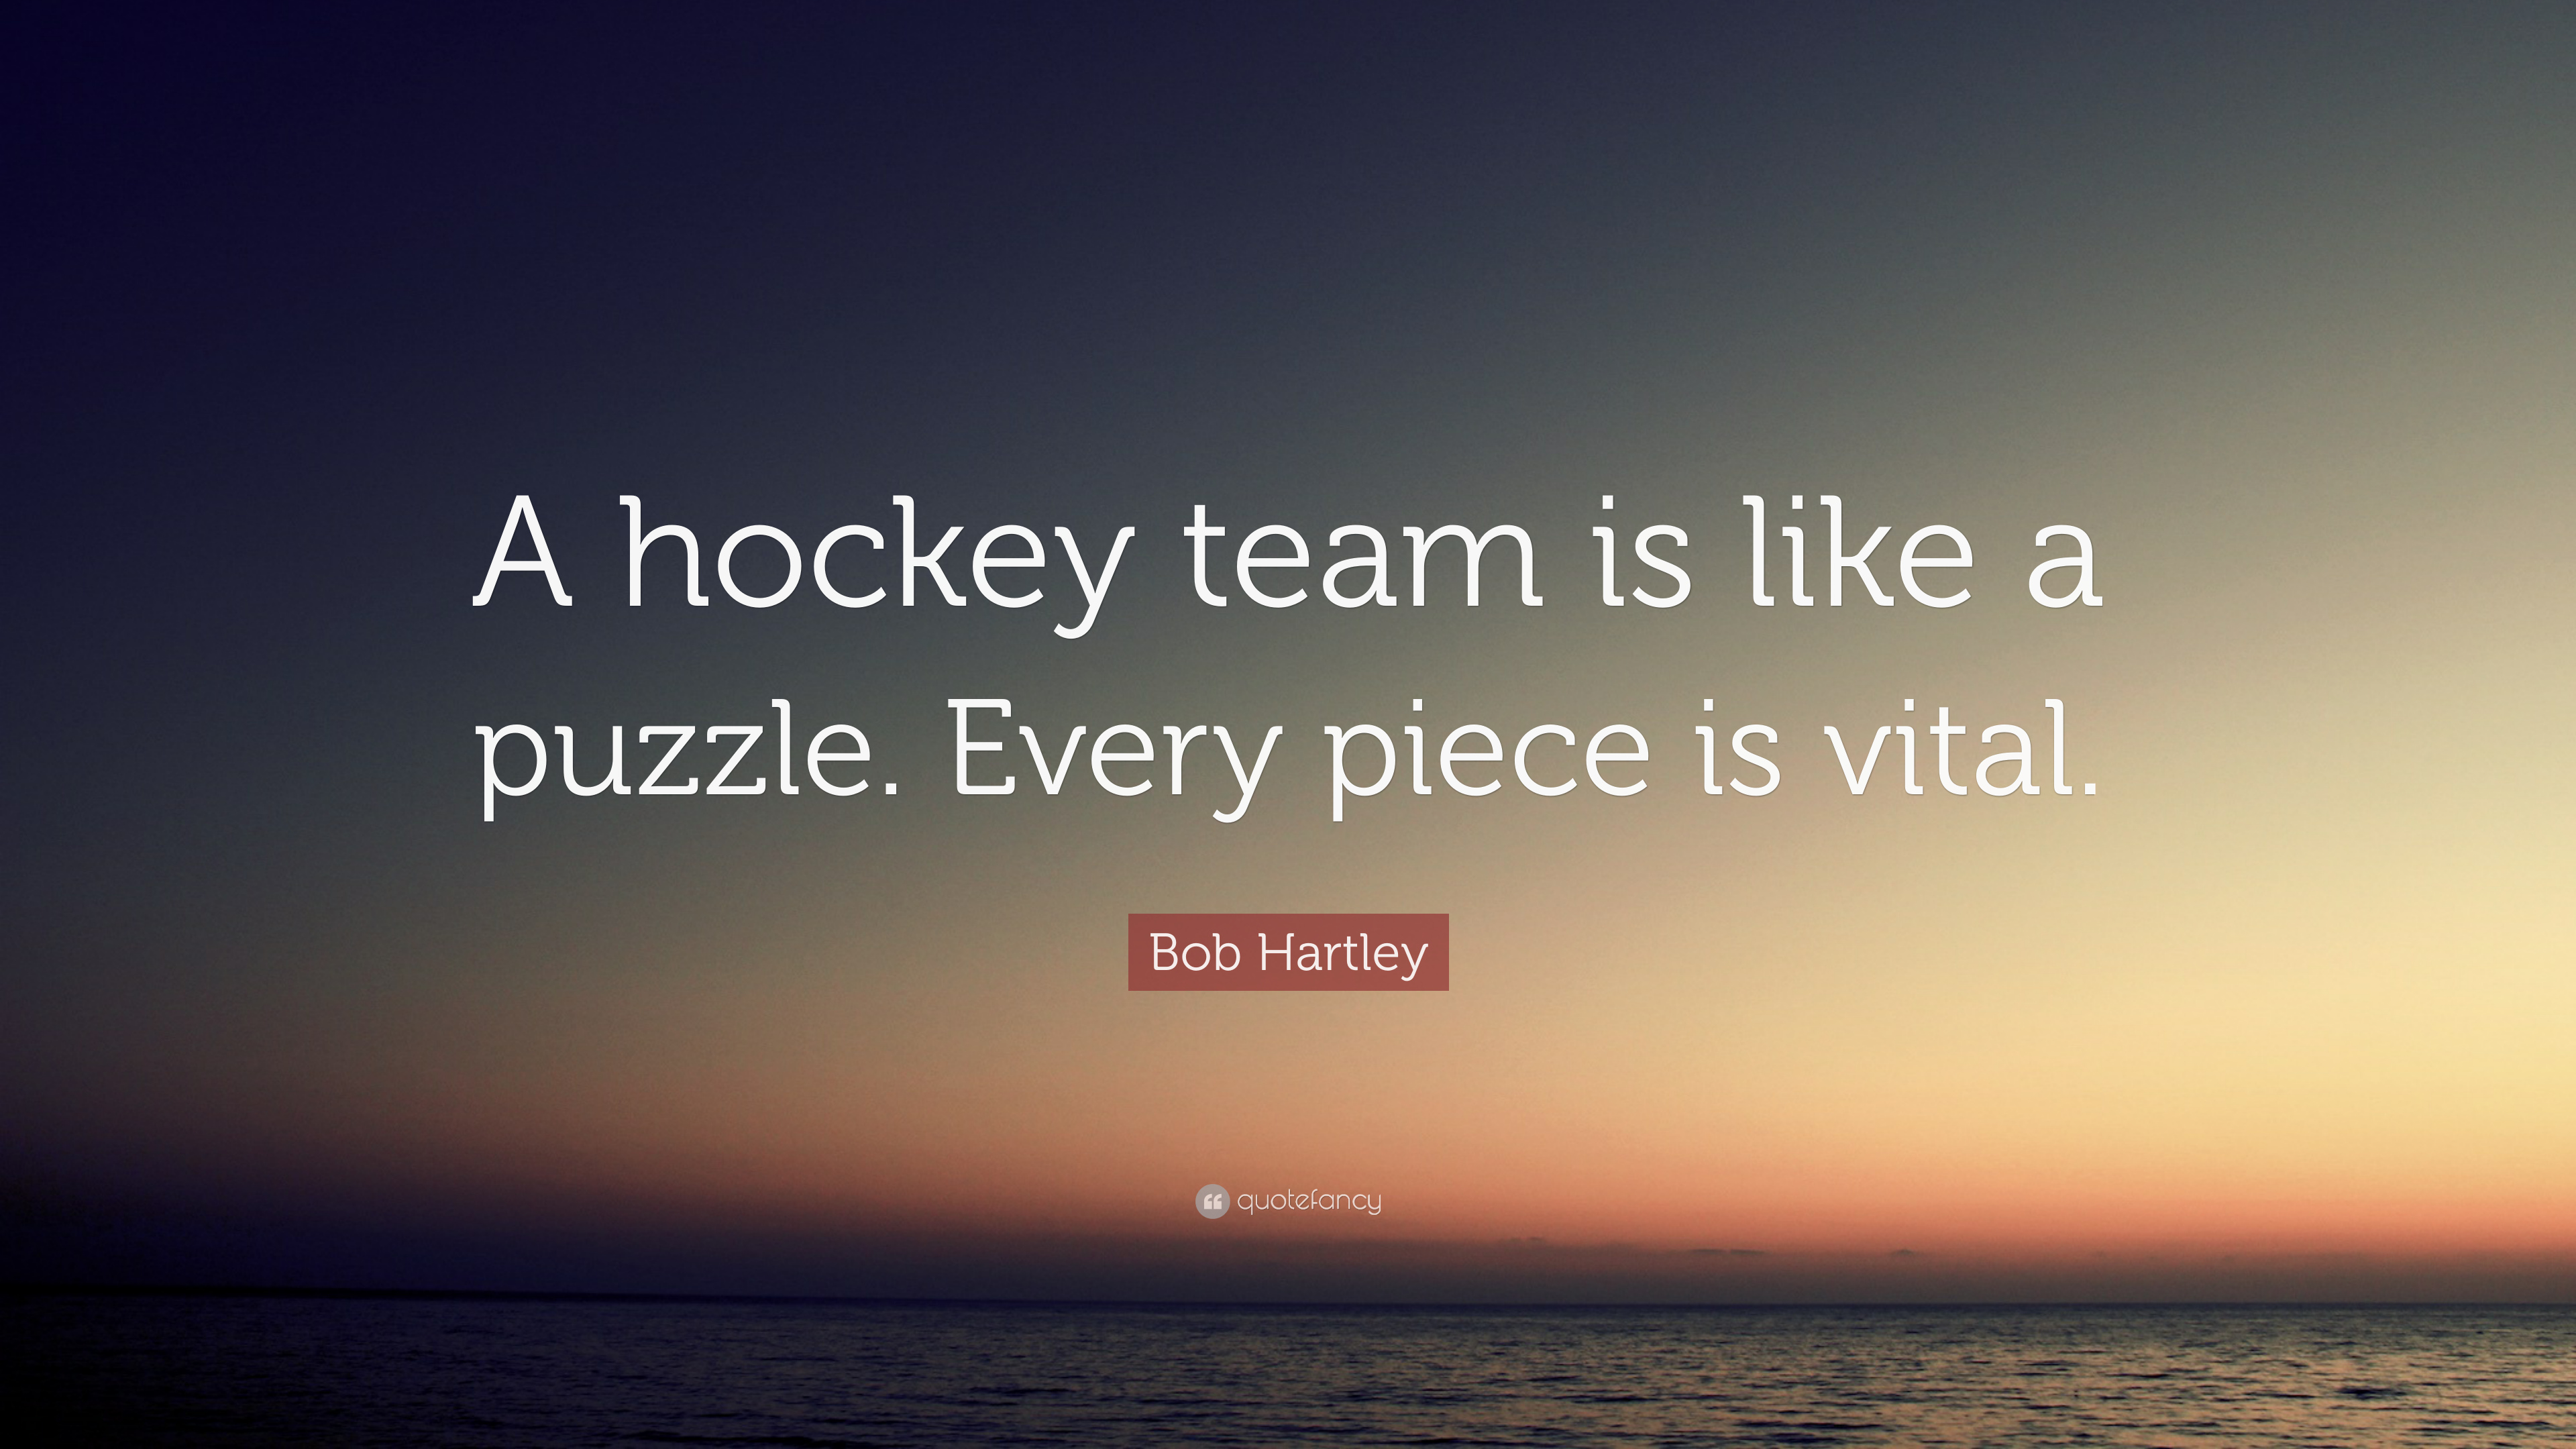 Hockey Team Quotes Tumblr Visitquotes